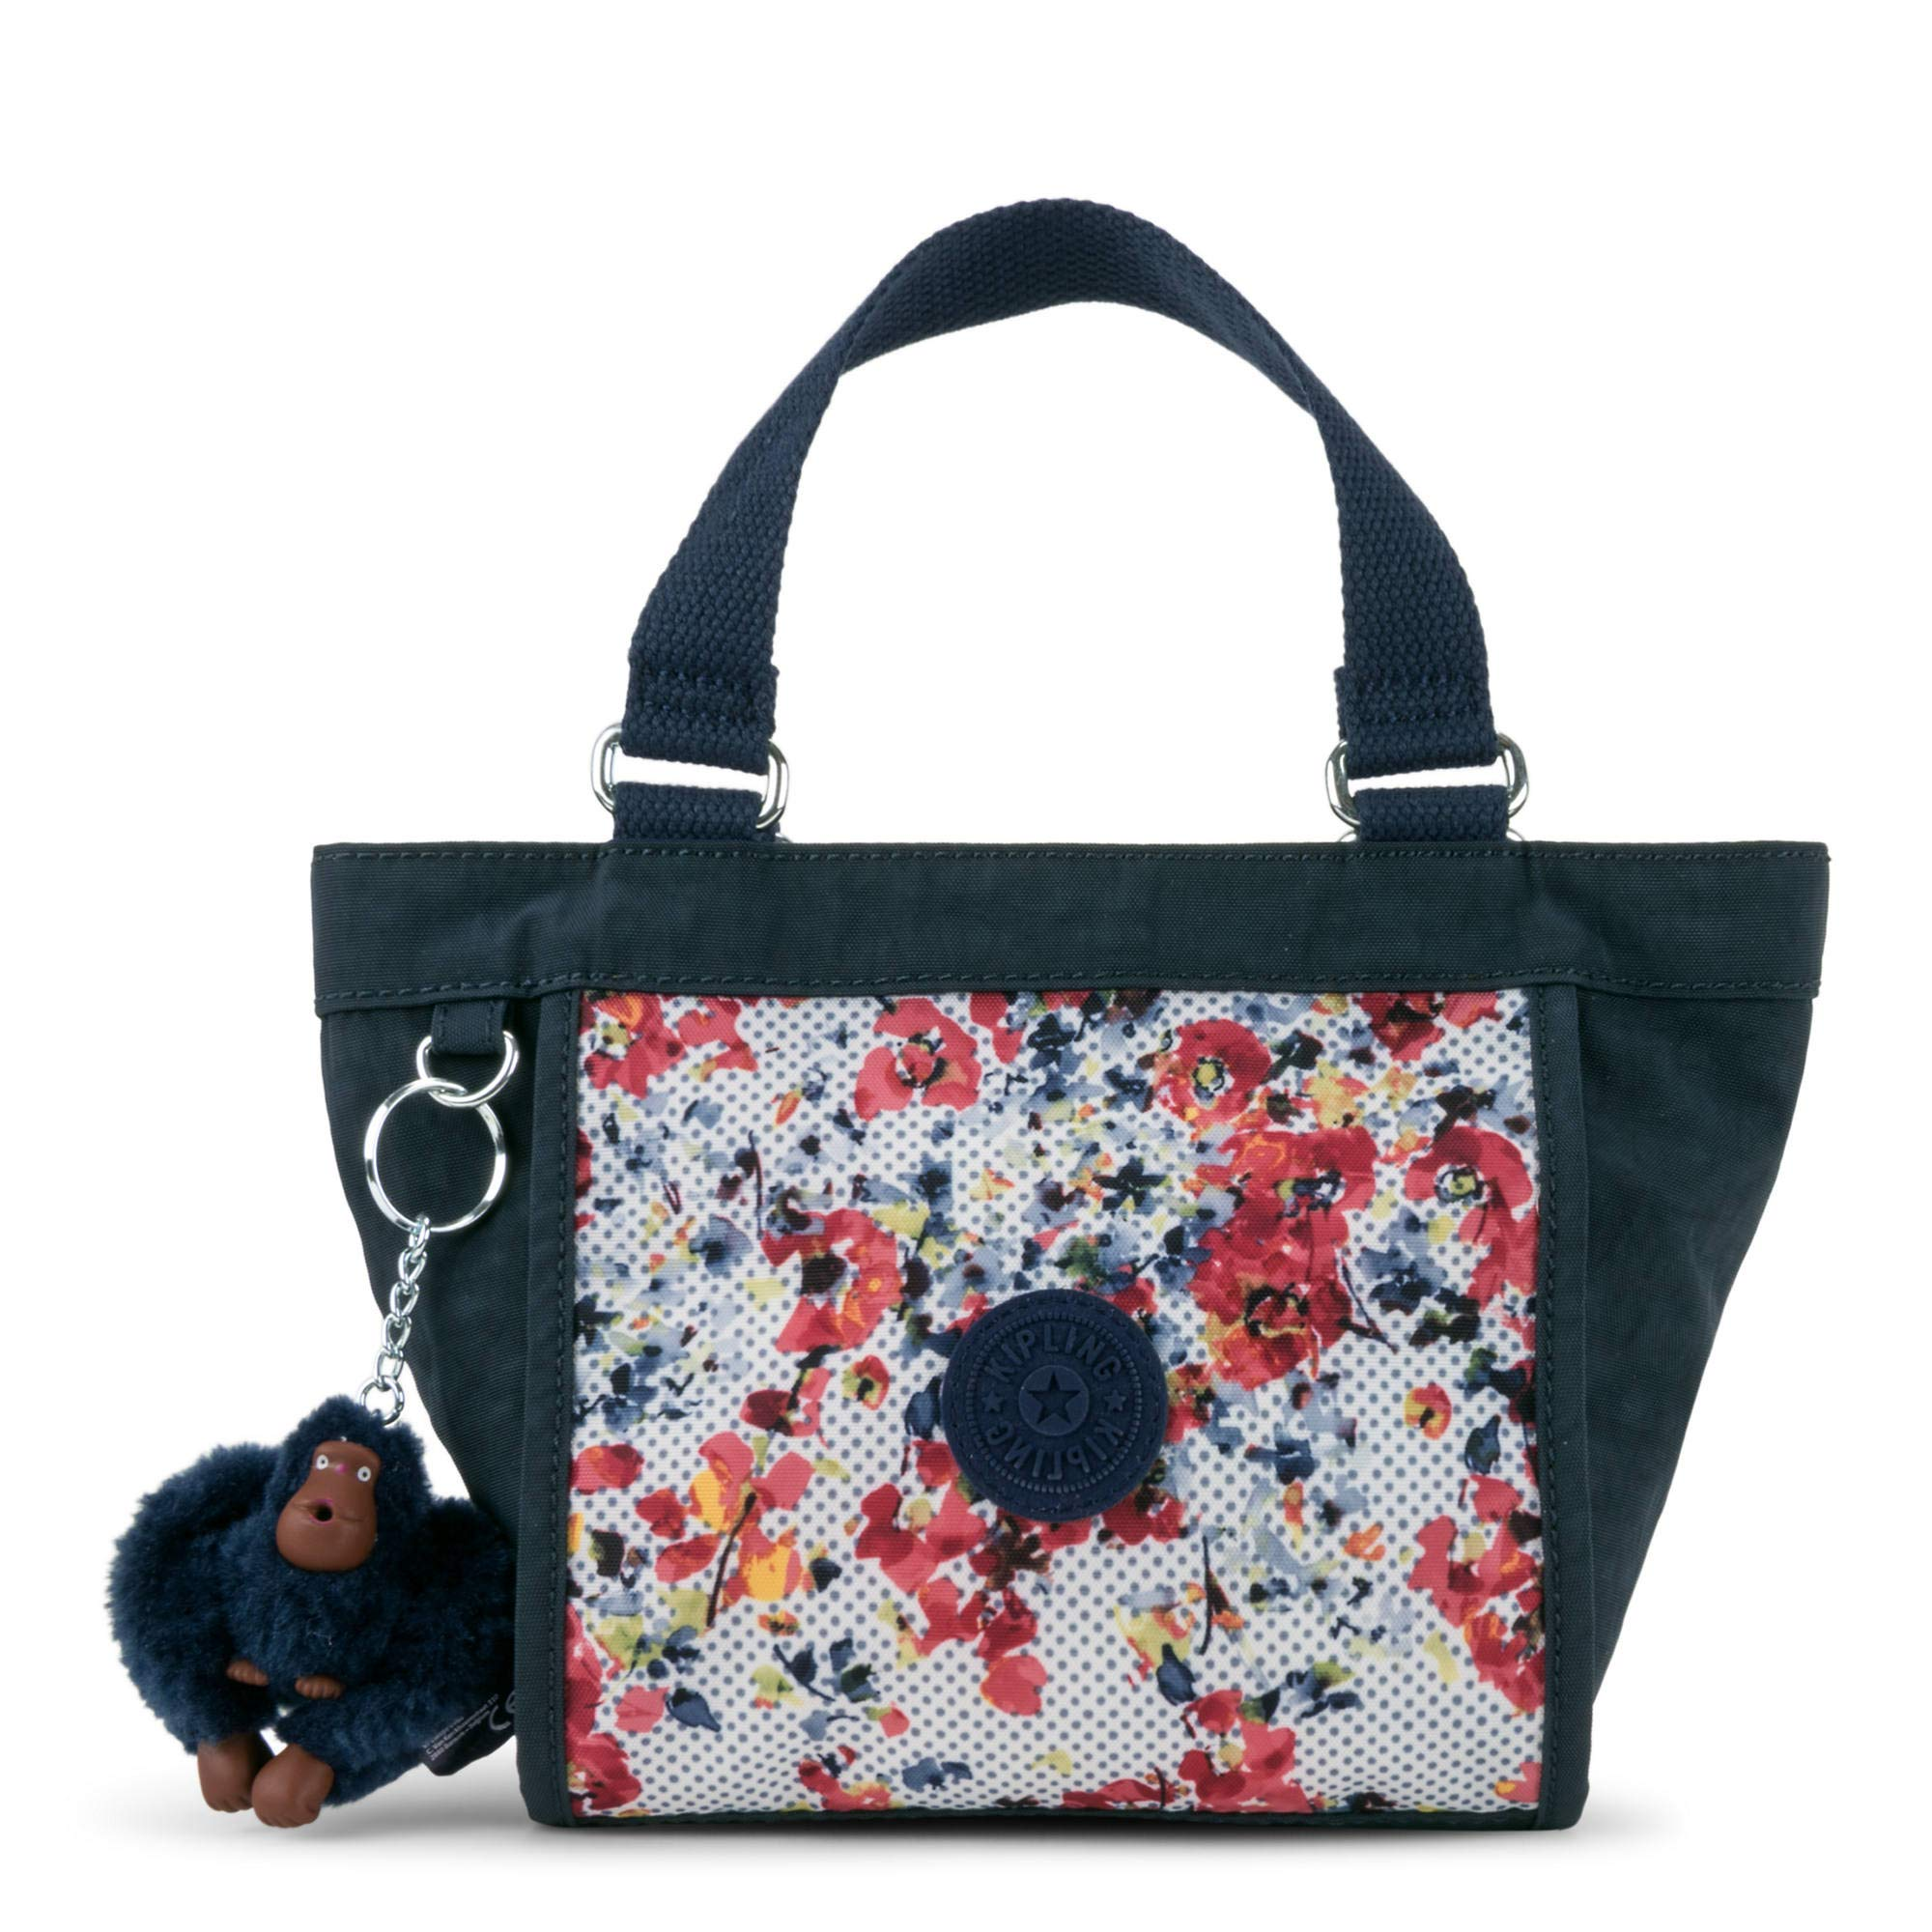 Kipling Shopper Printed Minibag, Busy Blossoms Blue Combo